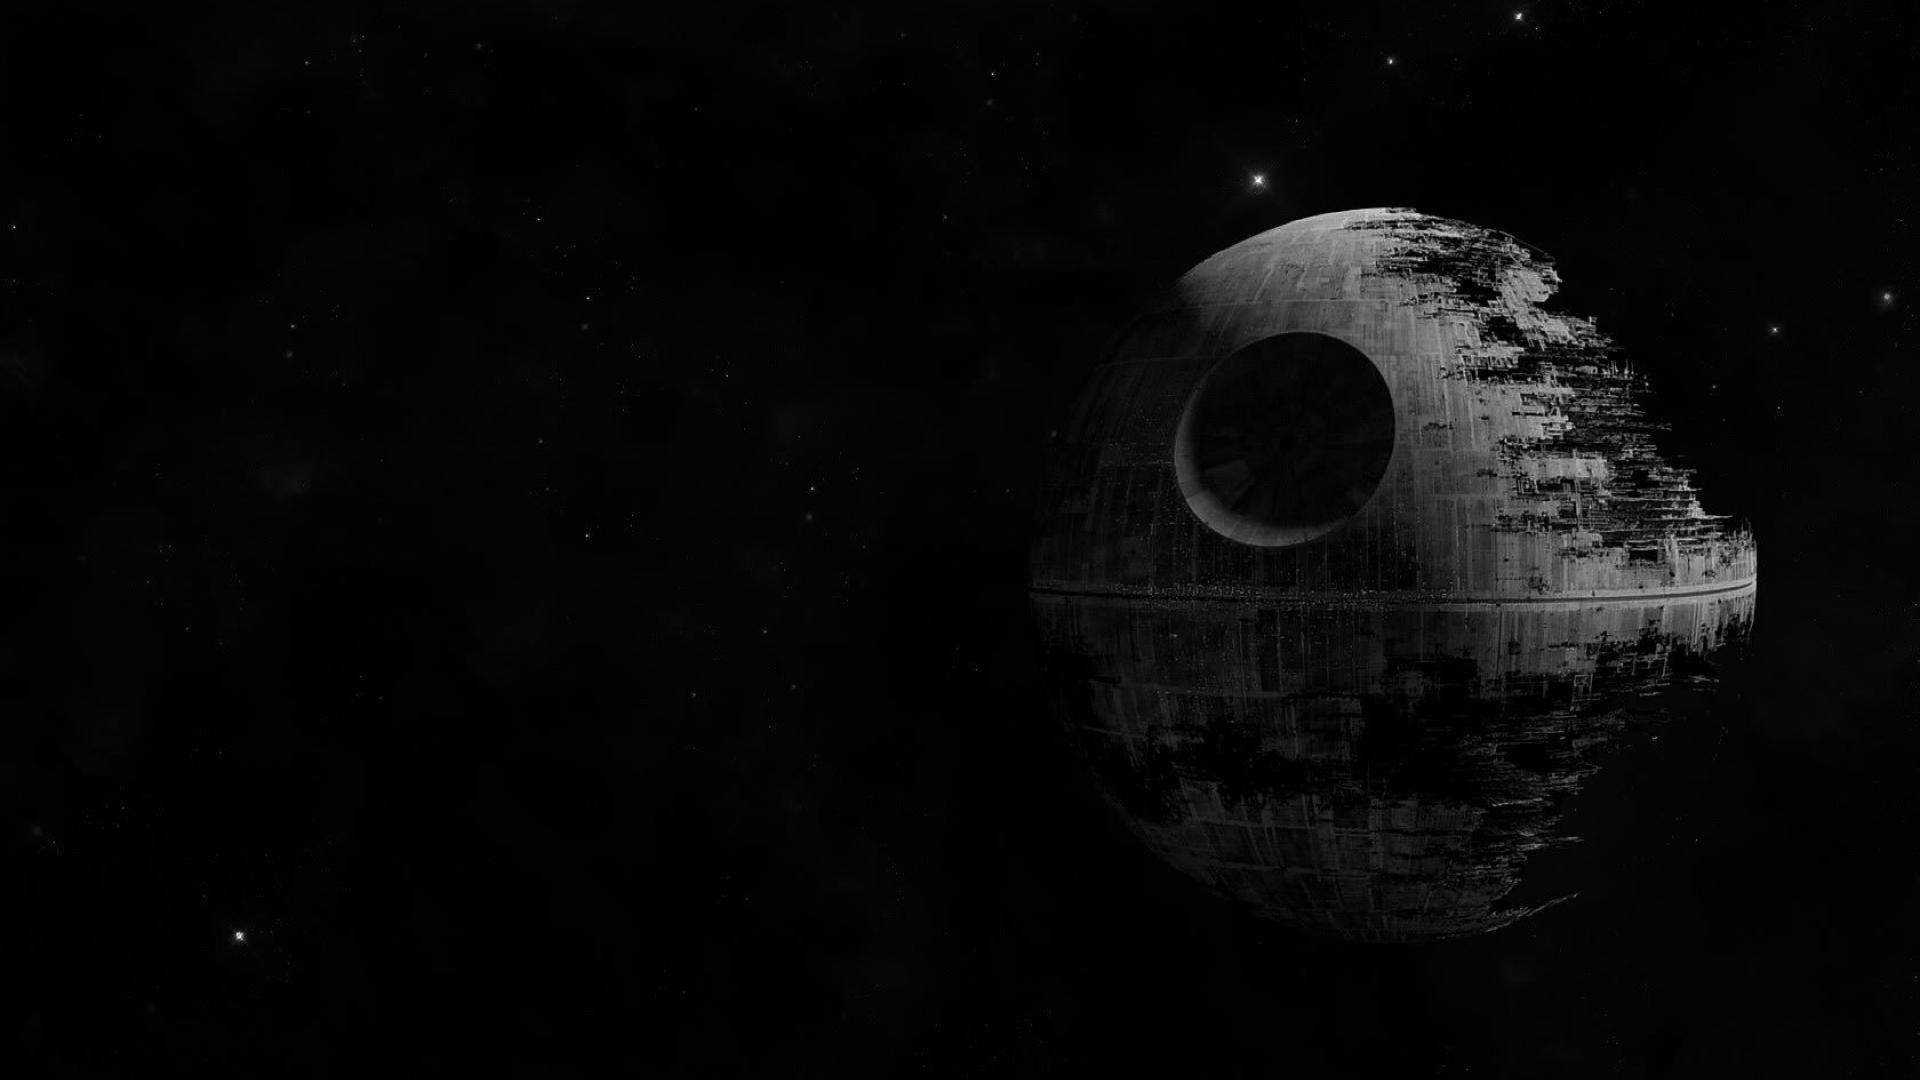 Hd Star Wars Wallpaper Download Free Awesome Backgrounds For